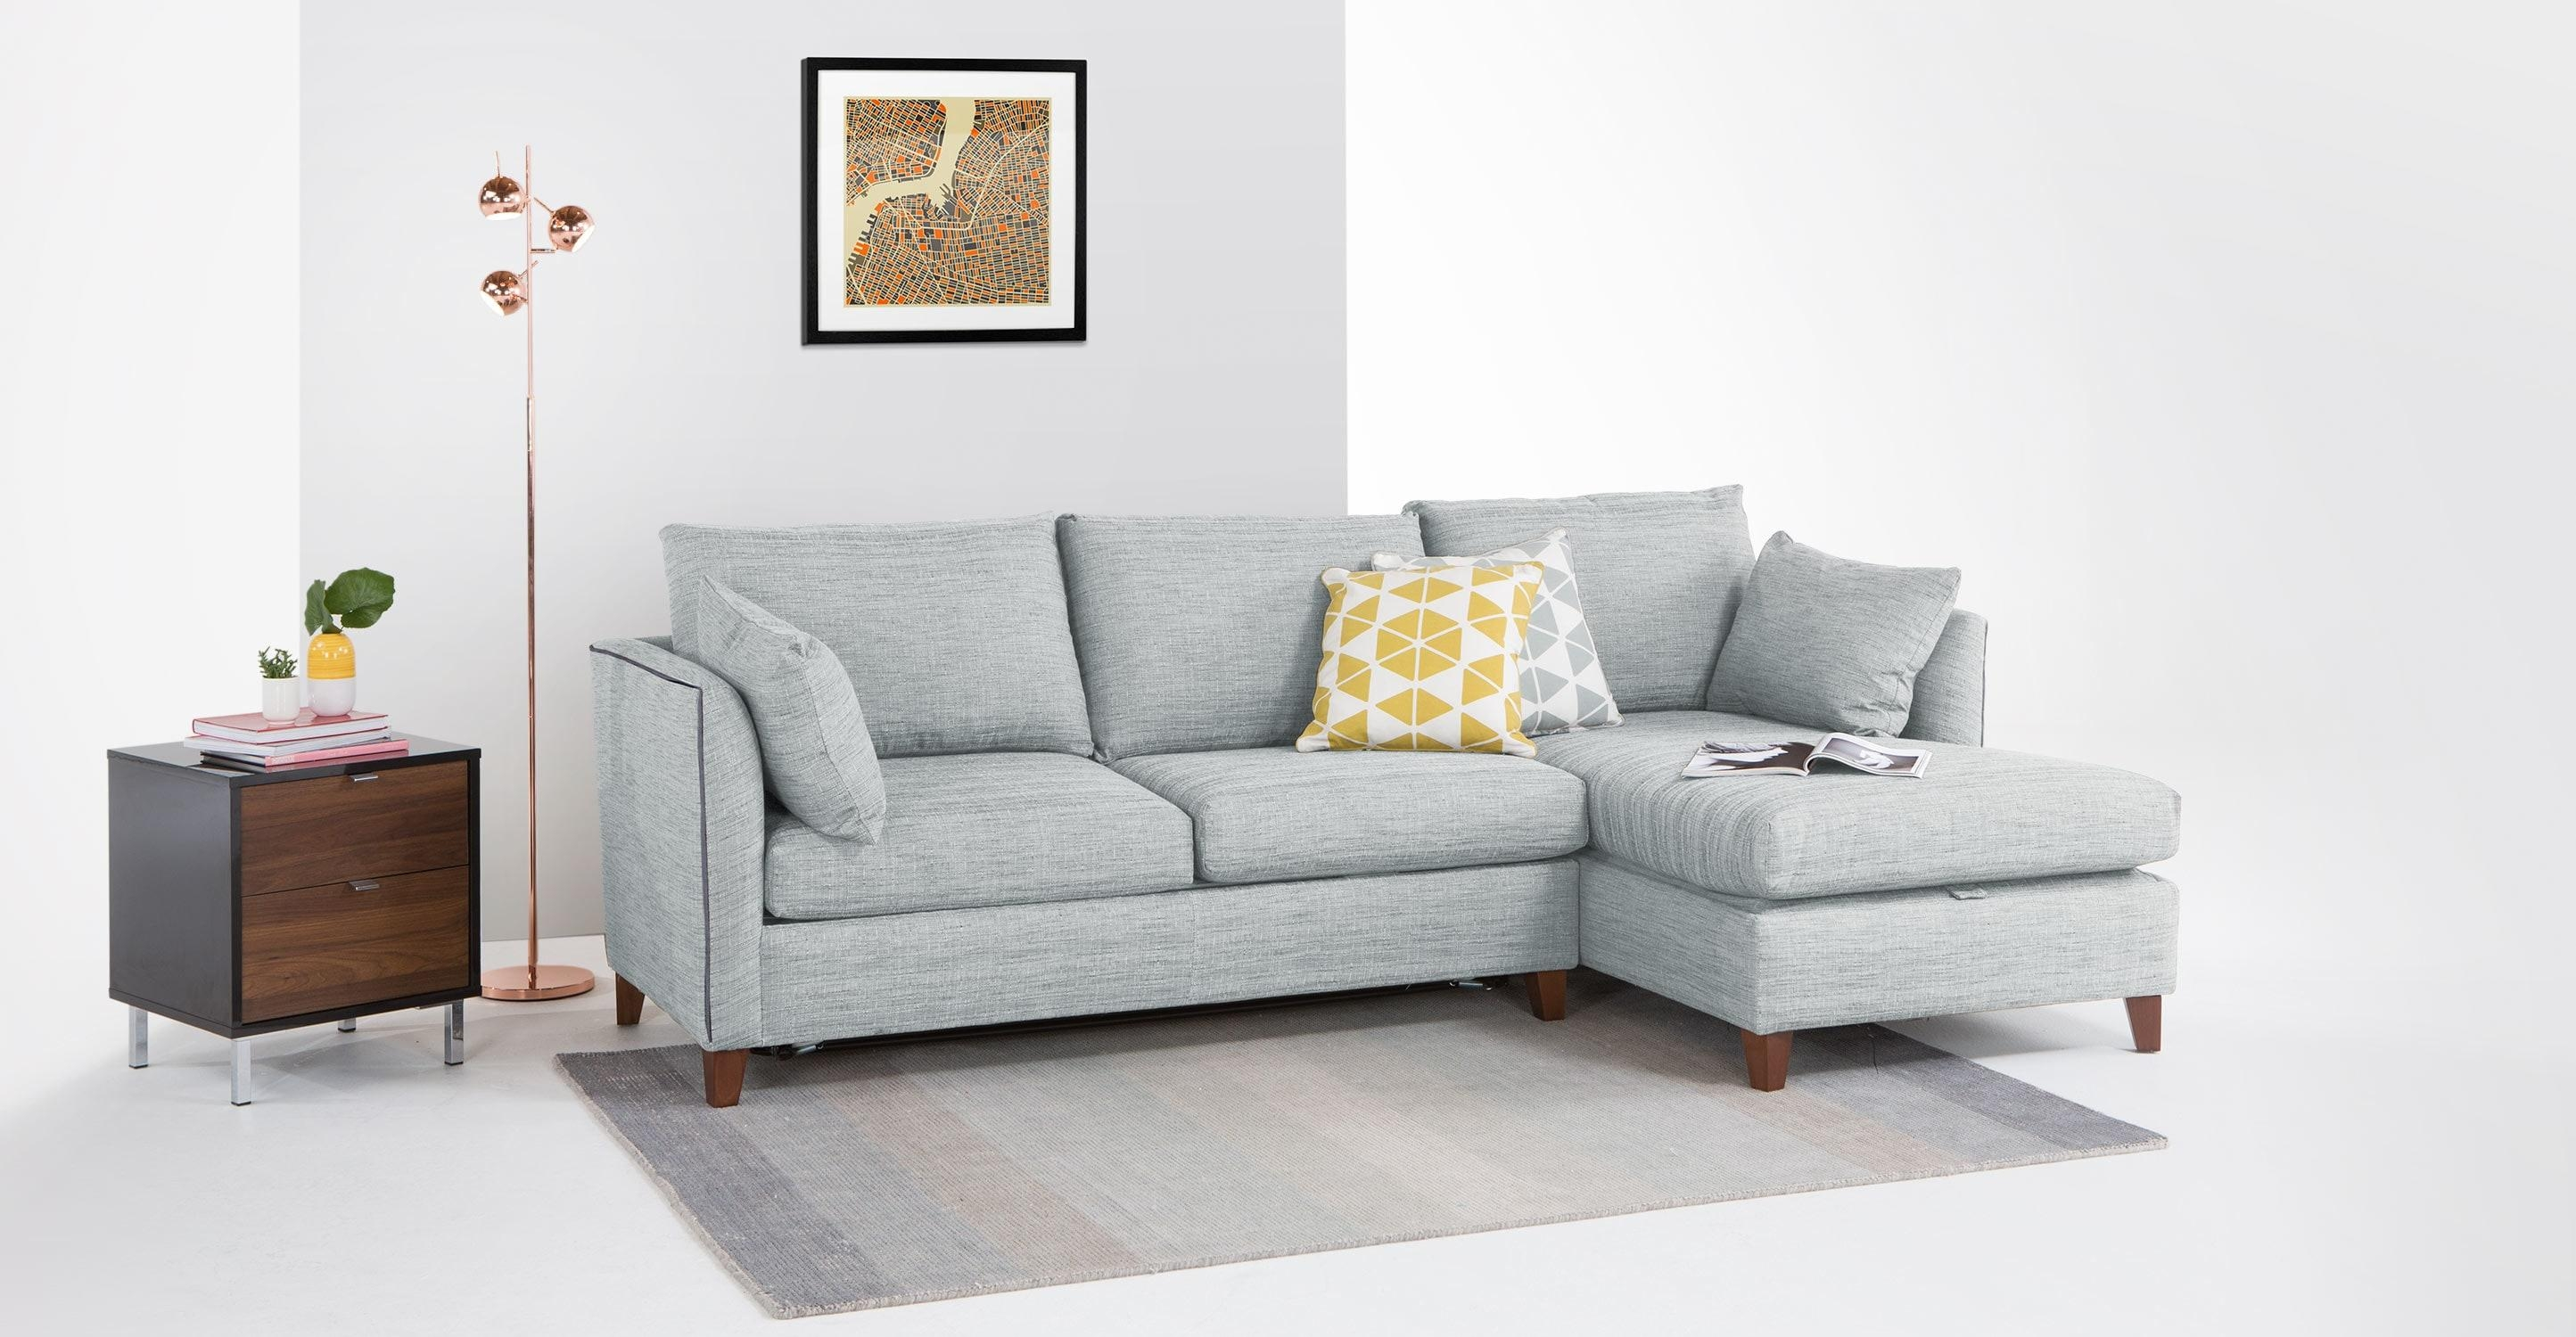 Furniture : Bari Corner Storage Sofabed With Memory Foam Mattress Regarding Storage Sofa Beds (View 11 of 20)